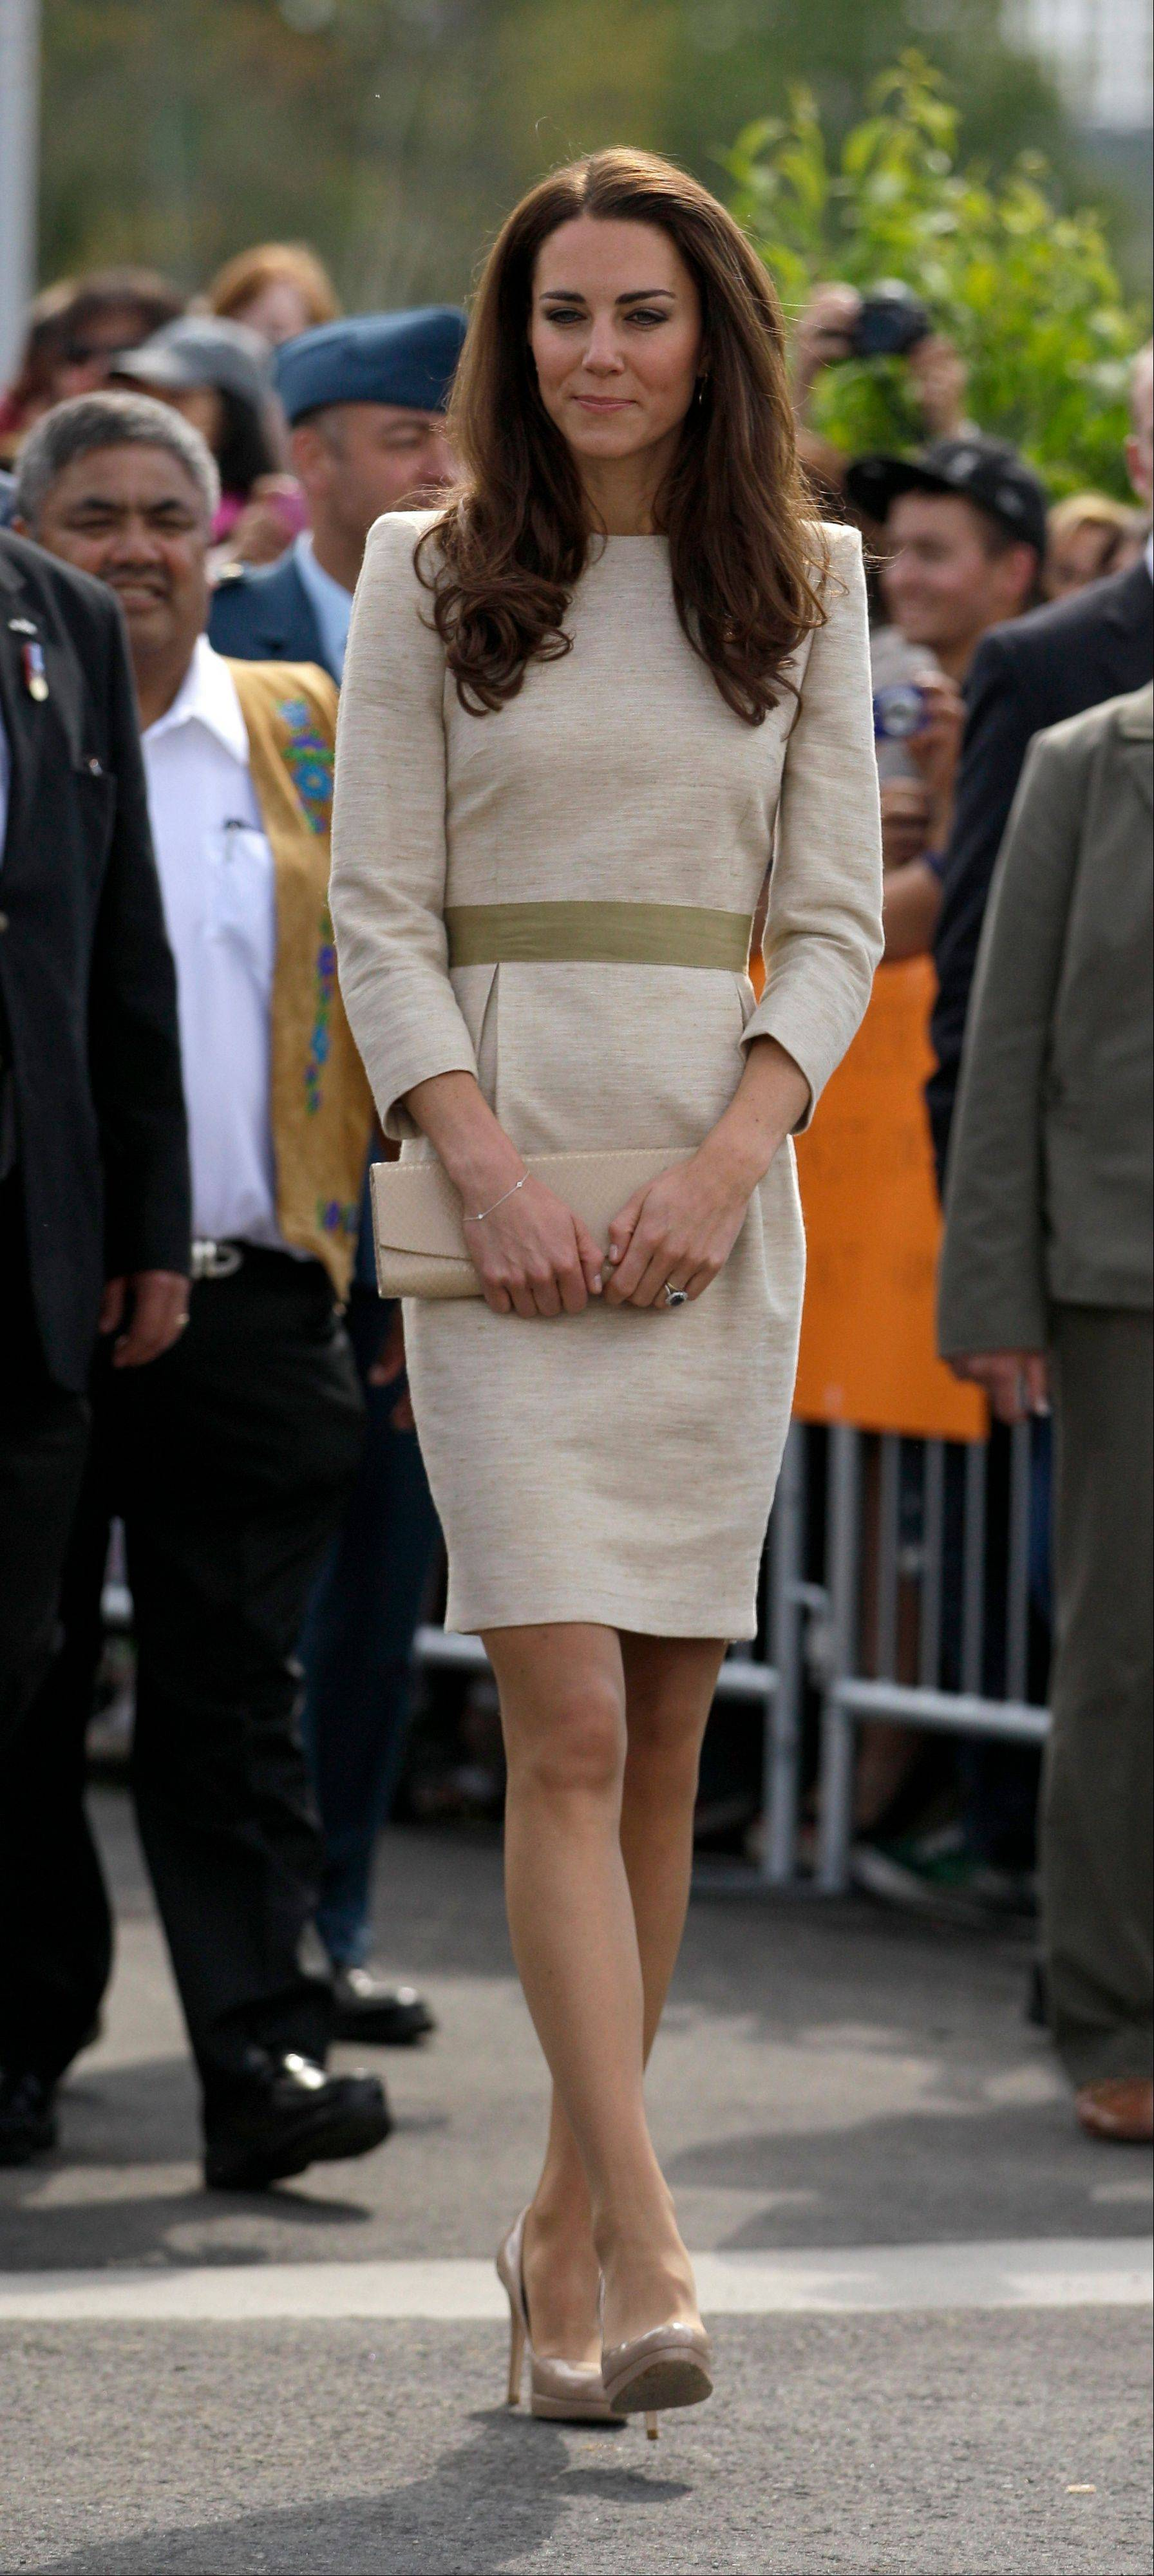 Kate, the Duchess of Cambridge, during a welcome ceremony in Yellowknife, Canada as the Royal couple continue their Royal Tour of Canada. Since the heyday of the 1980s, there's been a casual revolution, a revolt against covered-but-sheer legs. Now hosiery is making its comeback.